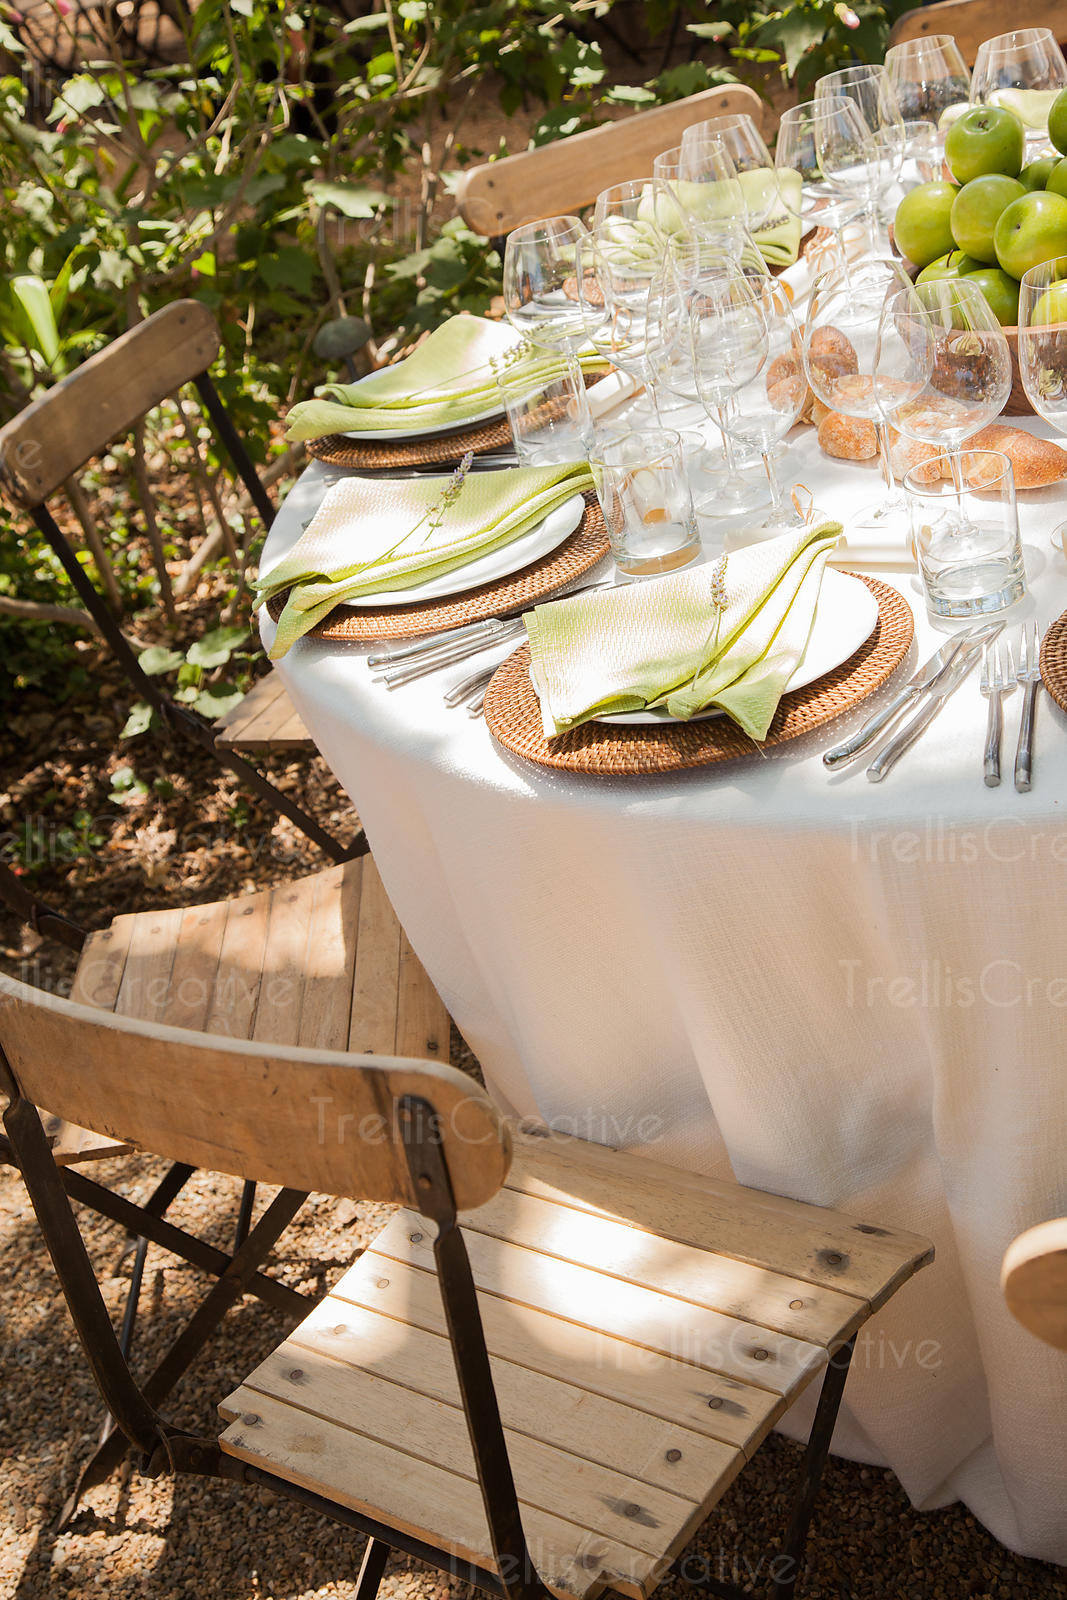 Rustic themed table setting at outdoor dinner